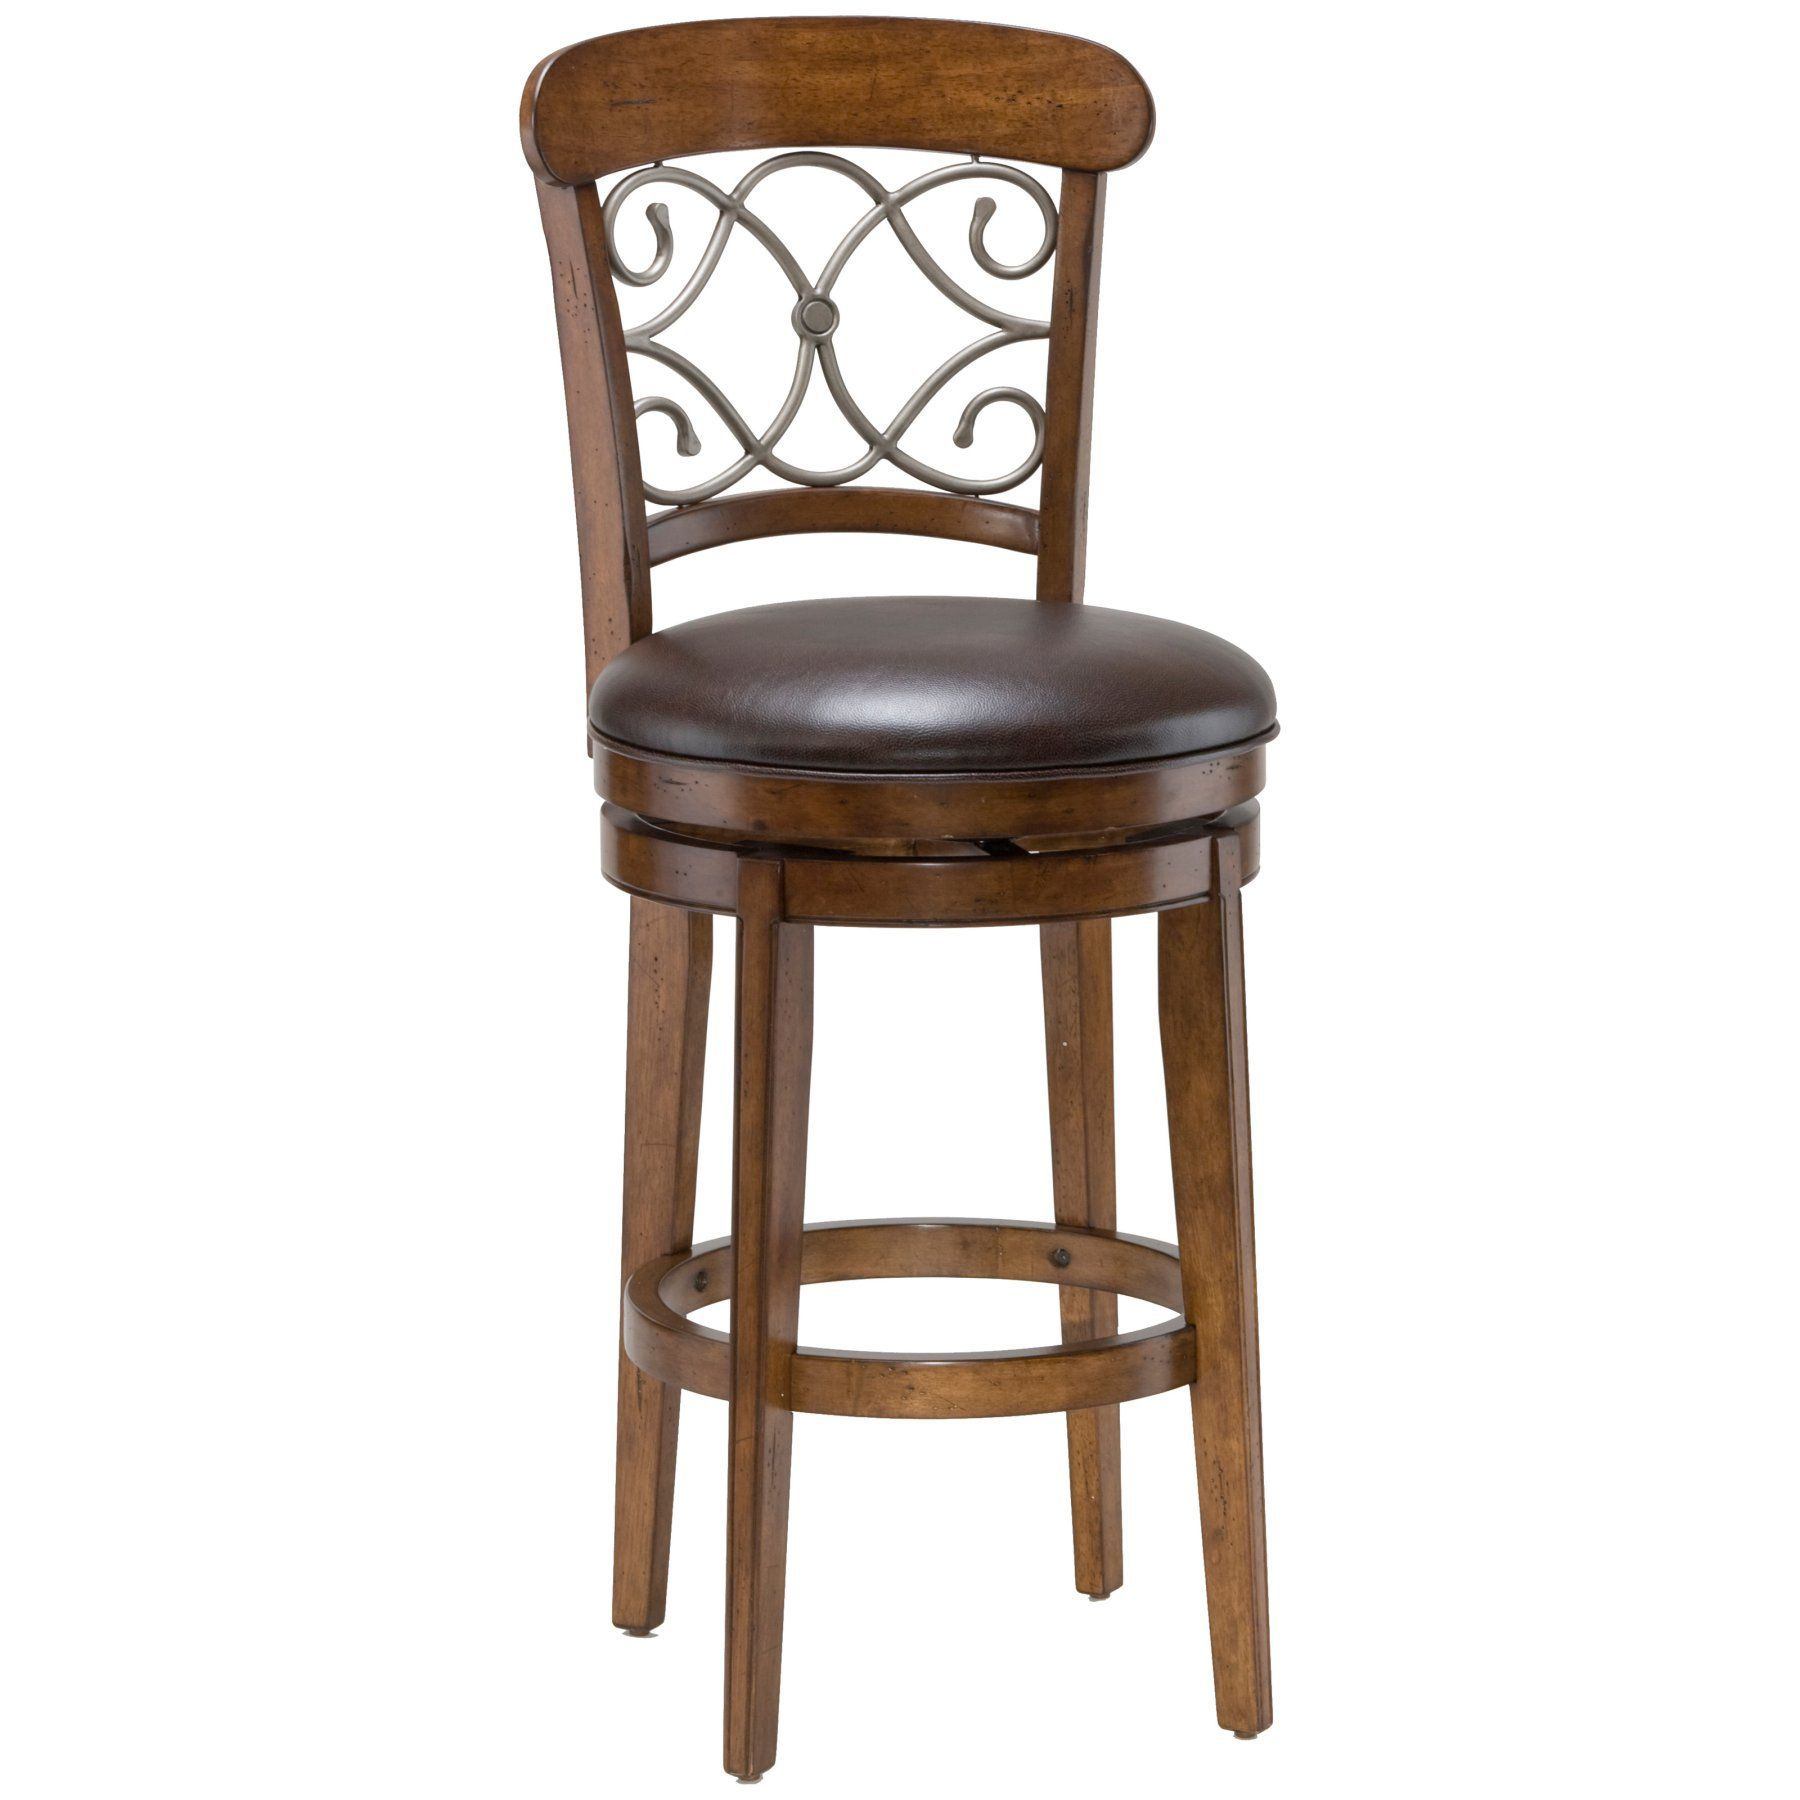 Miraculous Hillsdale Bergamo 30 In Swivel Bar Stool 4299 830S Caraccident5 Cool Chair Designs And Ideas Caraccident5Info